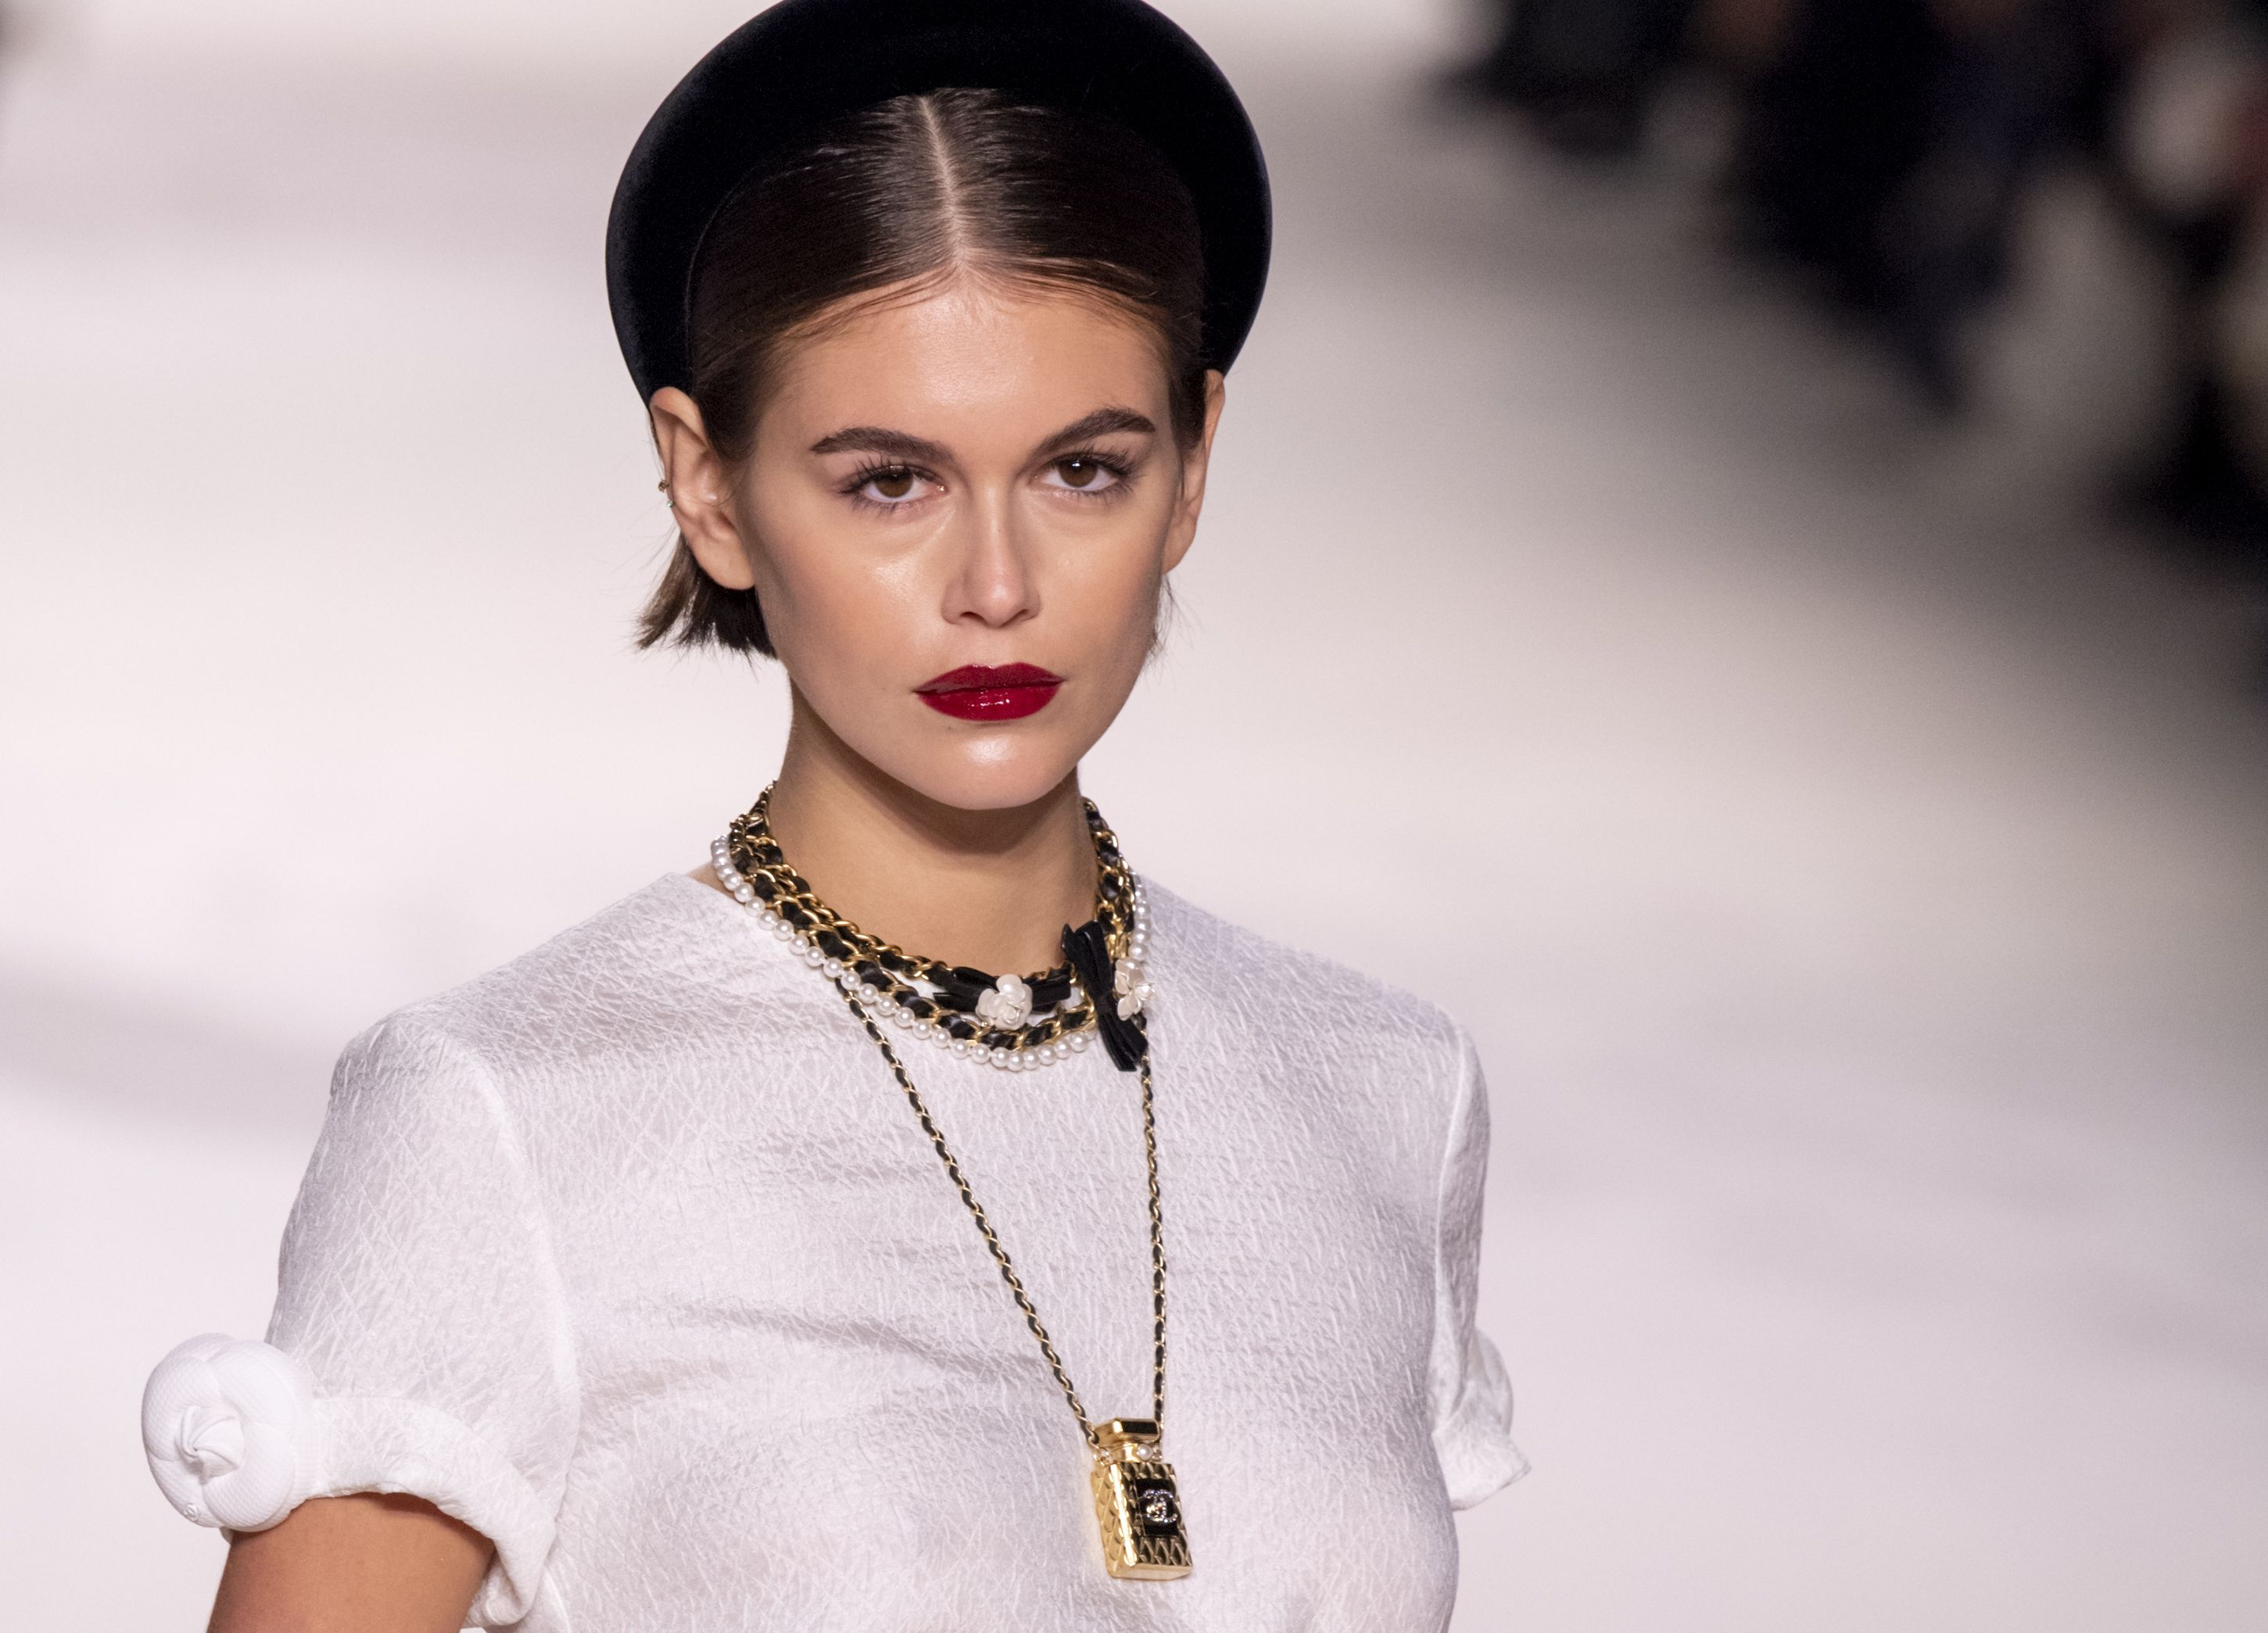 Chanel Métiers d'Art Served Up '80s Princess Diana-Inspired Beauty